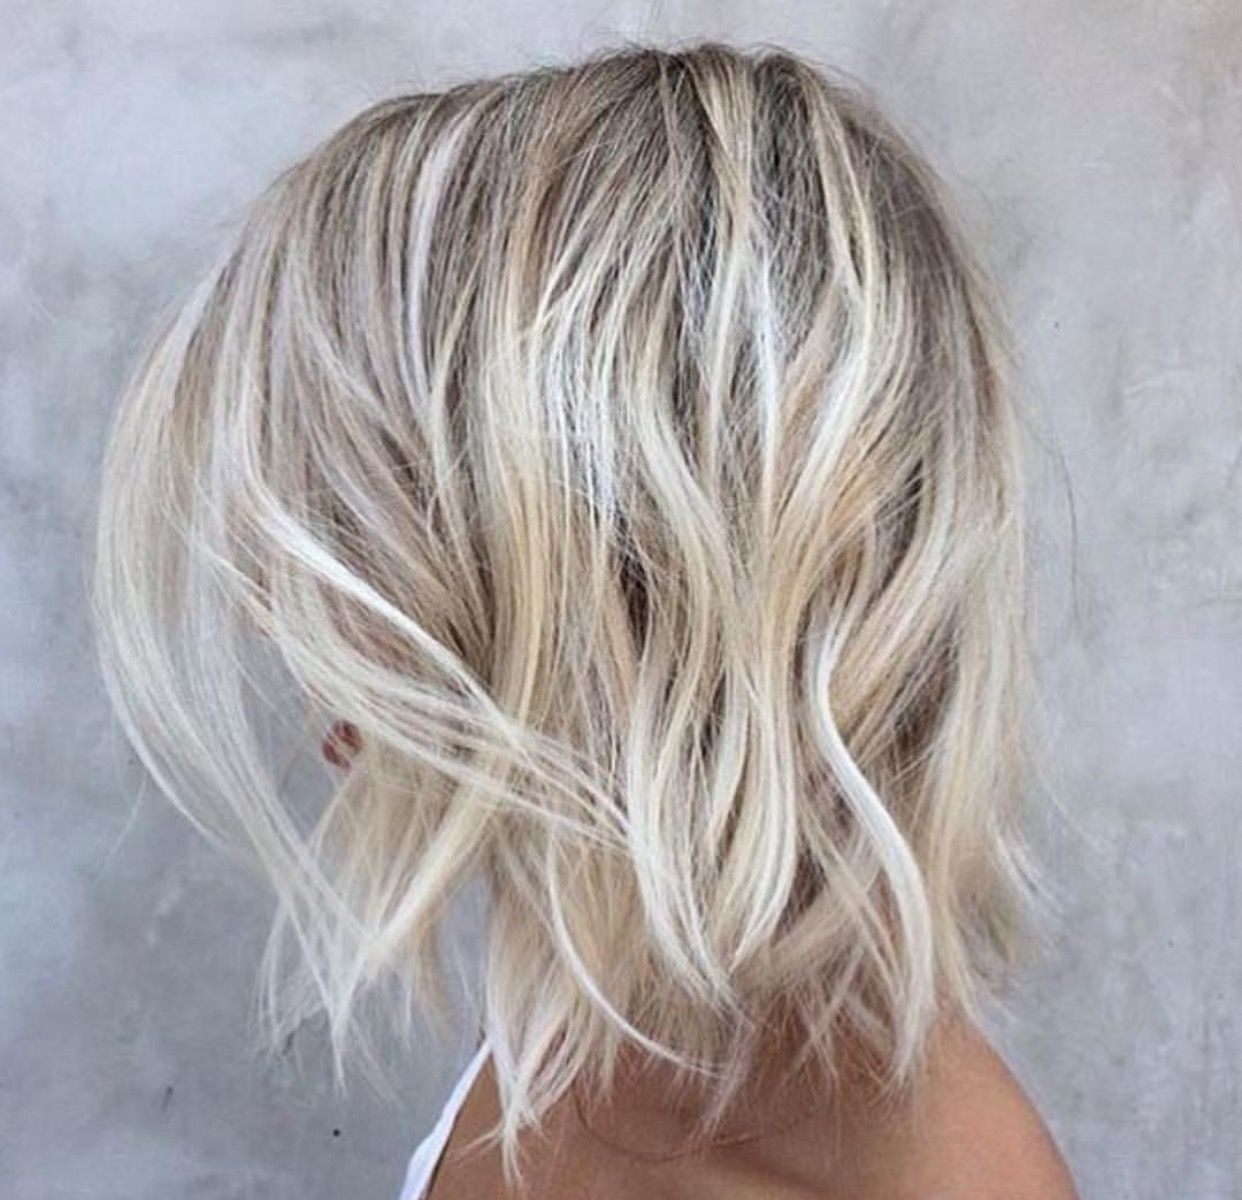 Pin by candice tamez on blonde pinterest hair style hair